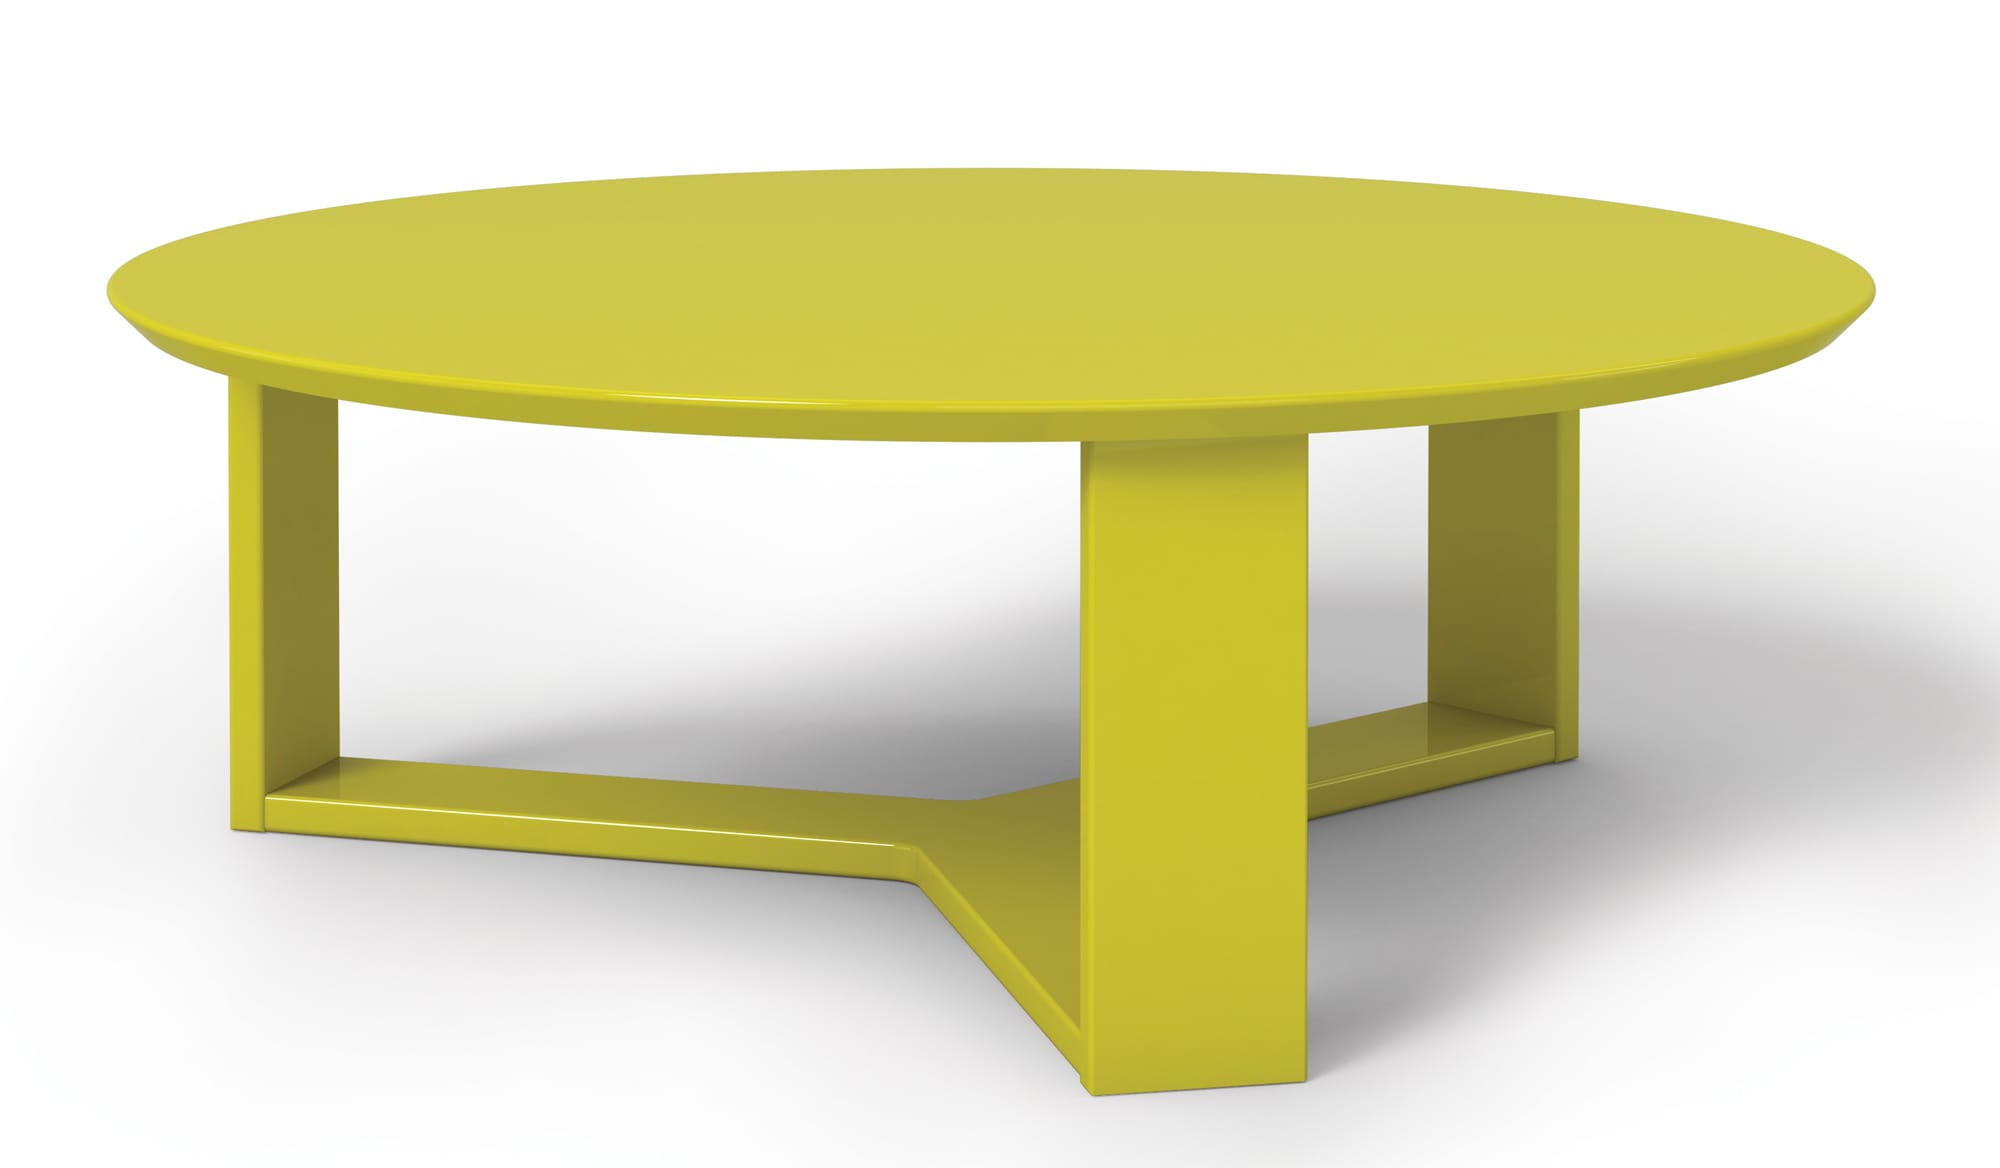 Madison 1 0 Lime Gloss Round Accent Coffee Table By Manhattan Comfort